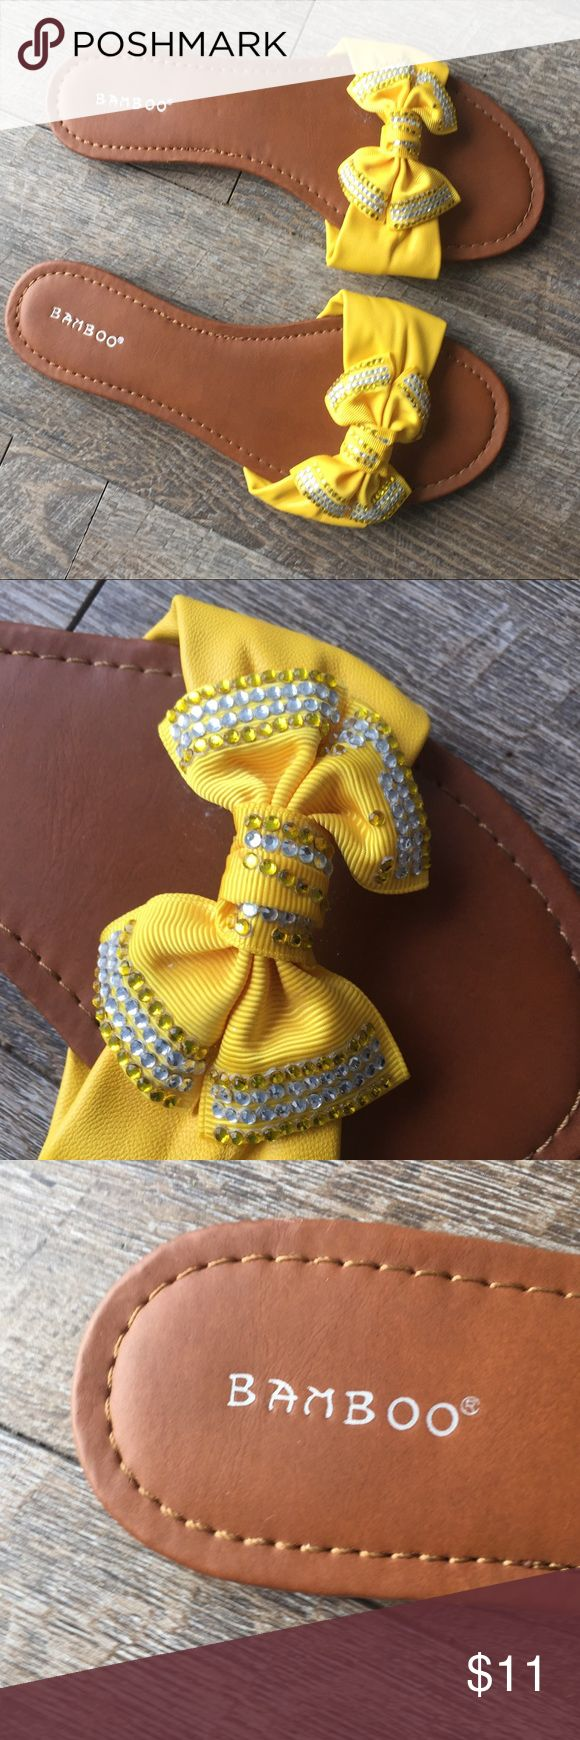 Bamboo yellow flip flops with bling bow 81/2 By the brand bamboo, women's flip flops in a size 81/2. Features a big yellow bow with bling on it. These are perfect with a floral blouse for spring.  These are in great condition. Has some minor missing beads but aren't noticeable unless you look really close. BAMBOO Shoes Sandals